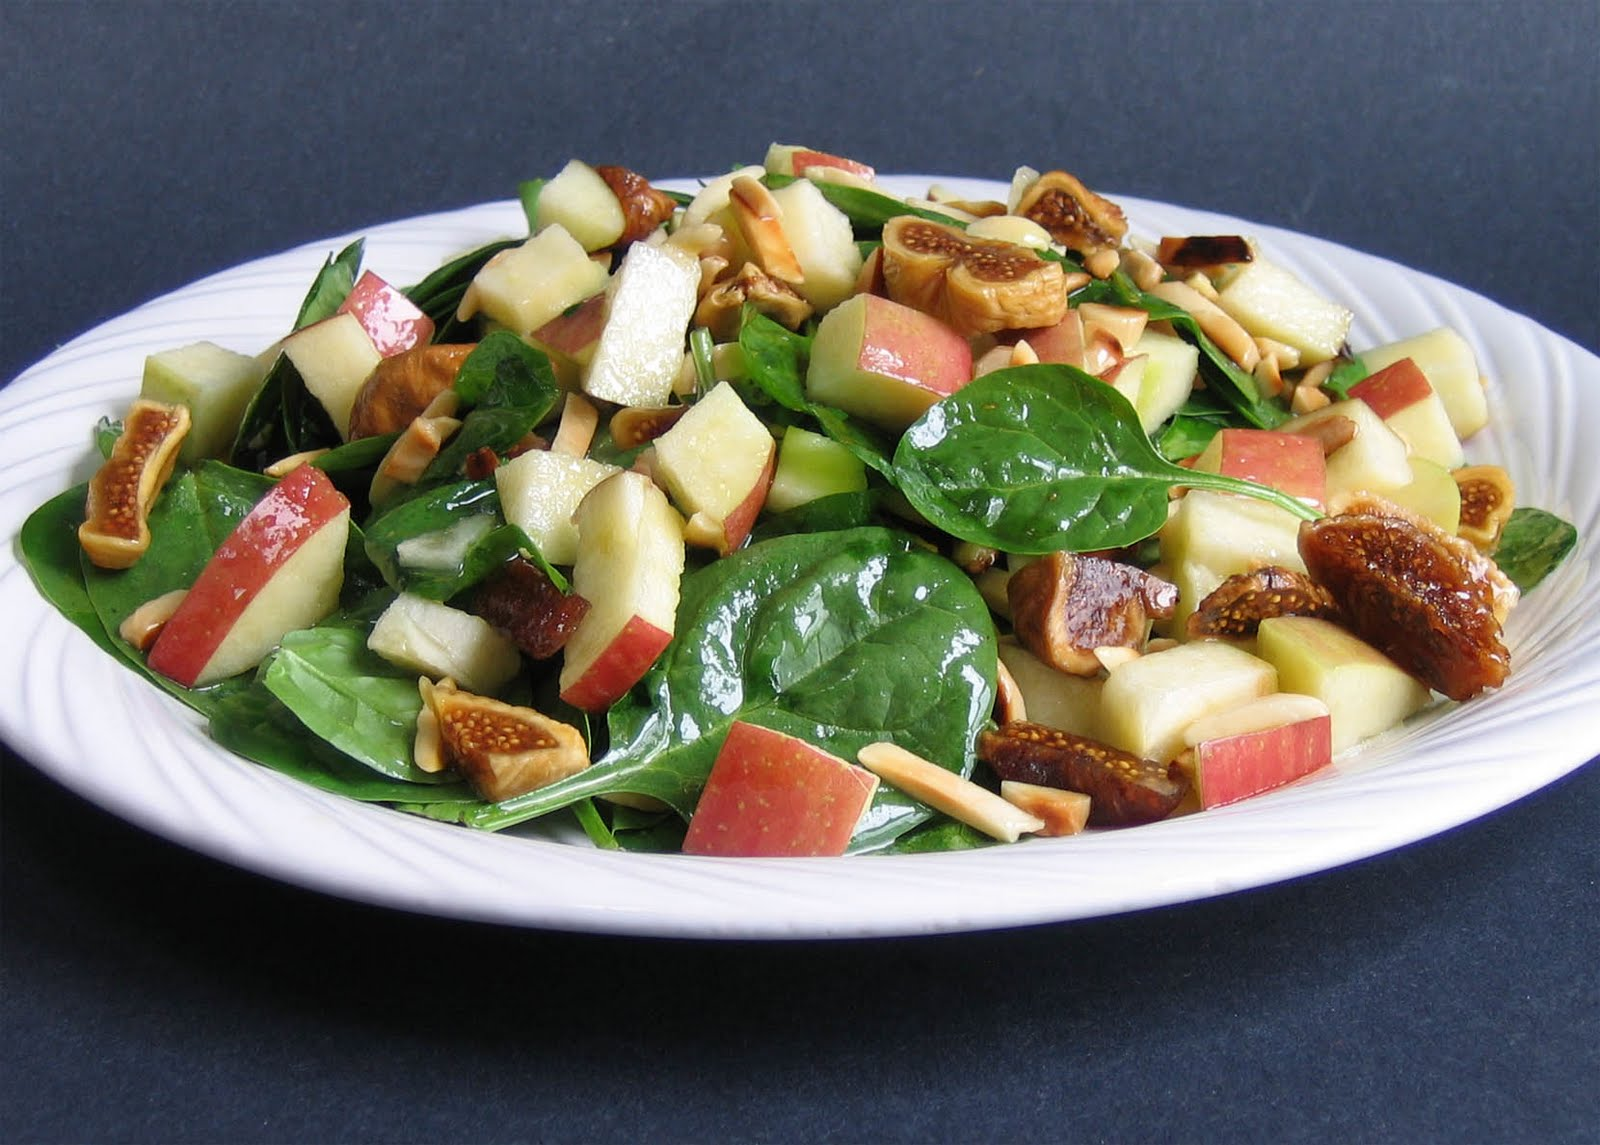 Spinach Salad with Almonds, Fuji Apple, and Figs